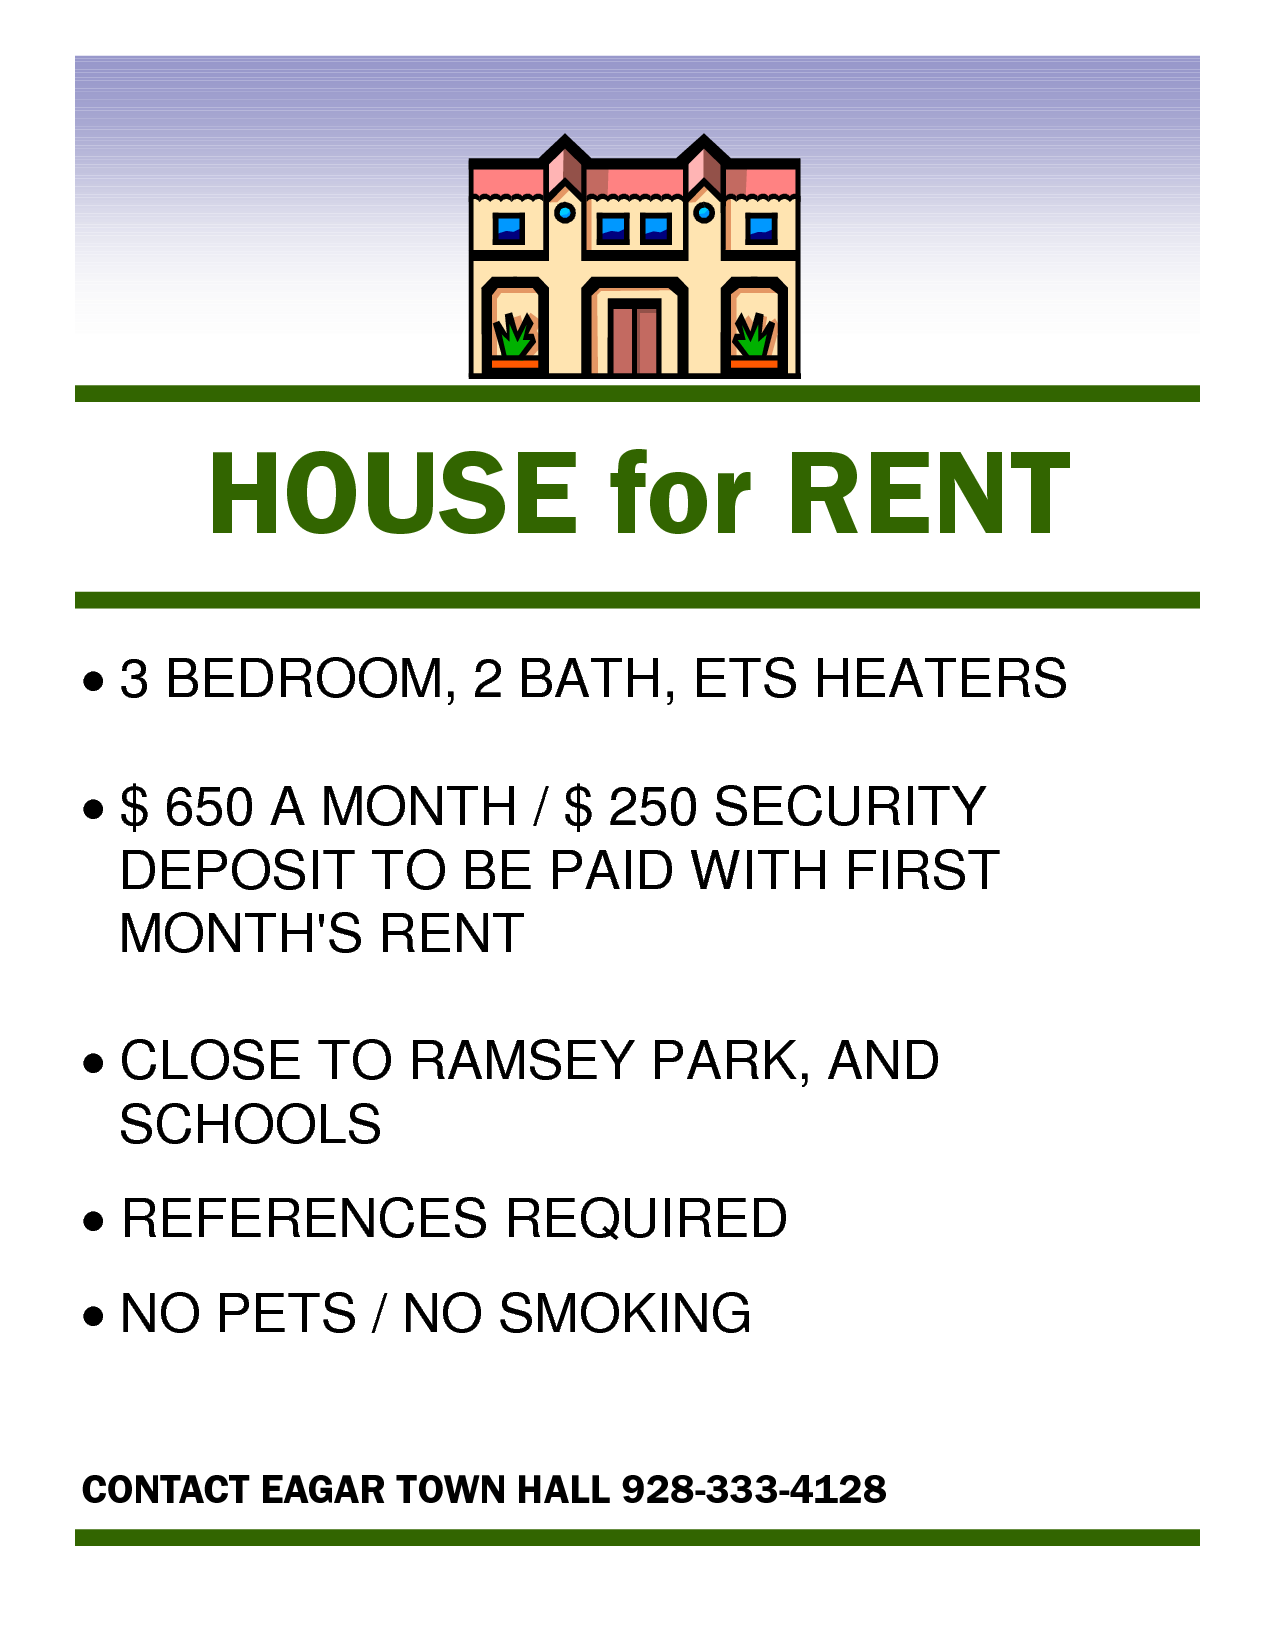 9 Home For Rent Flyer Free Psd Images Free Real Estate